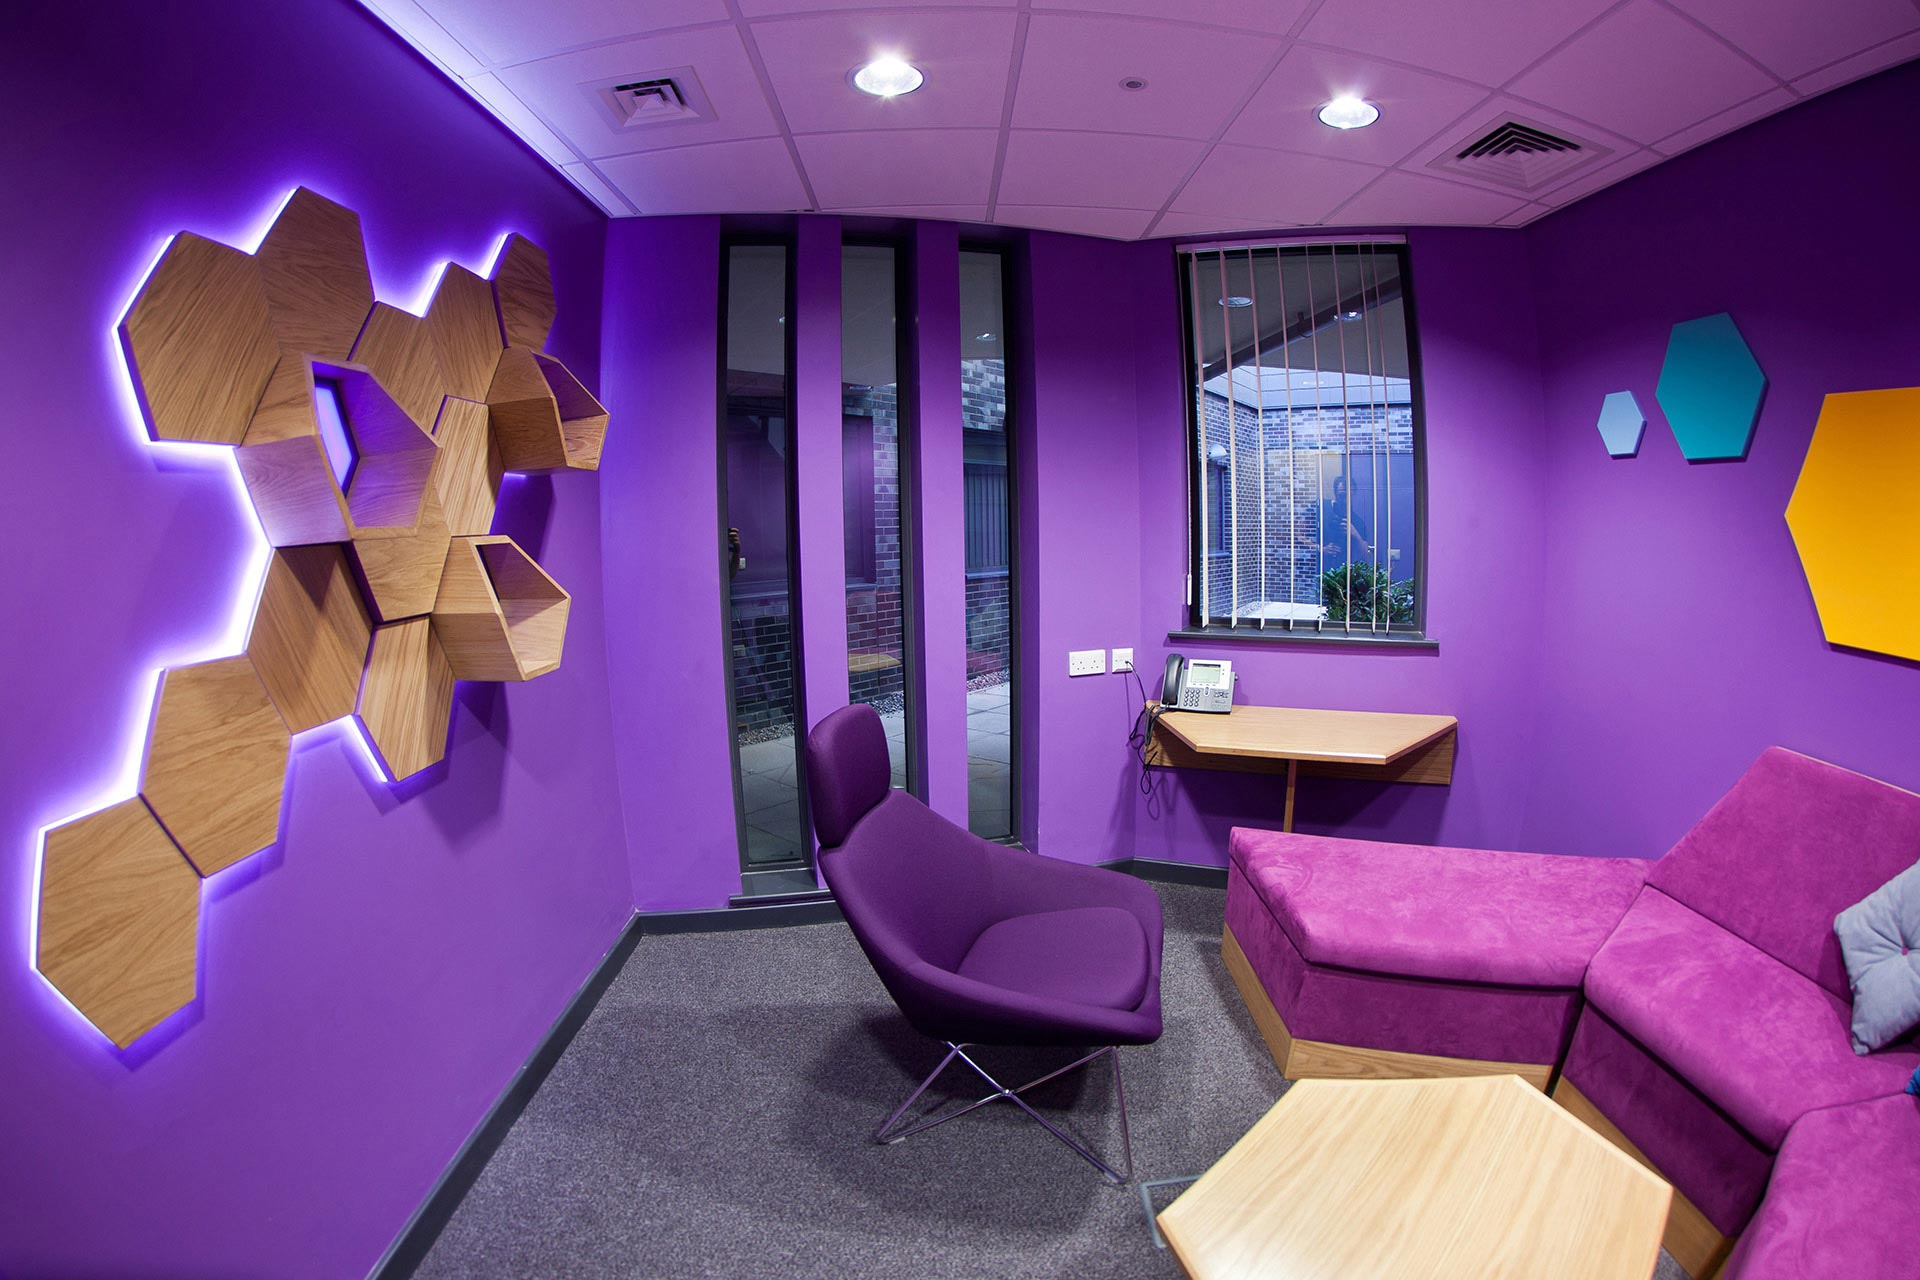 Hexagonal inspired seating in teenagers consultation room